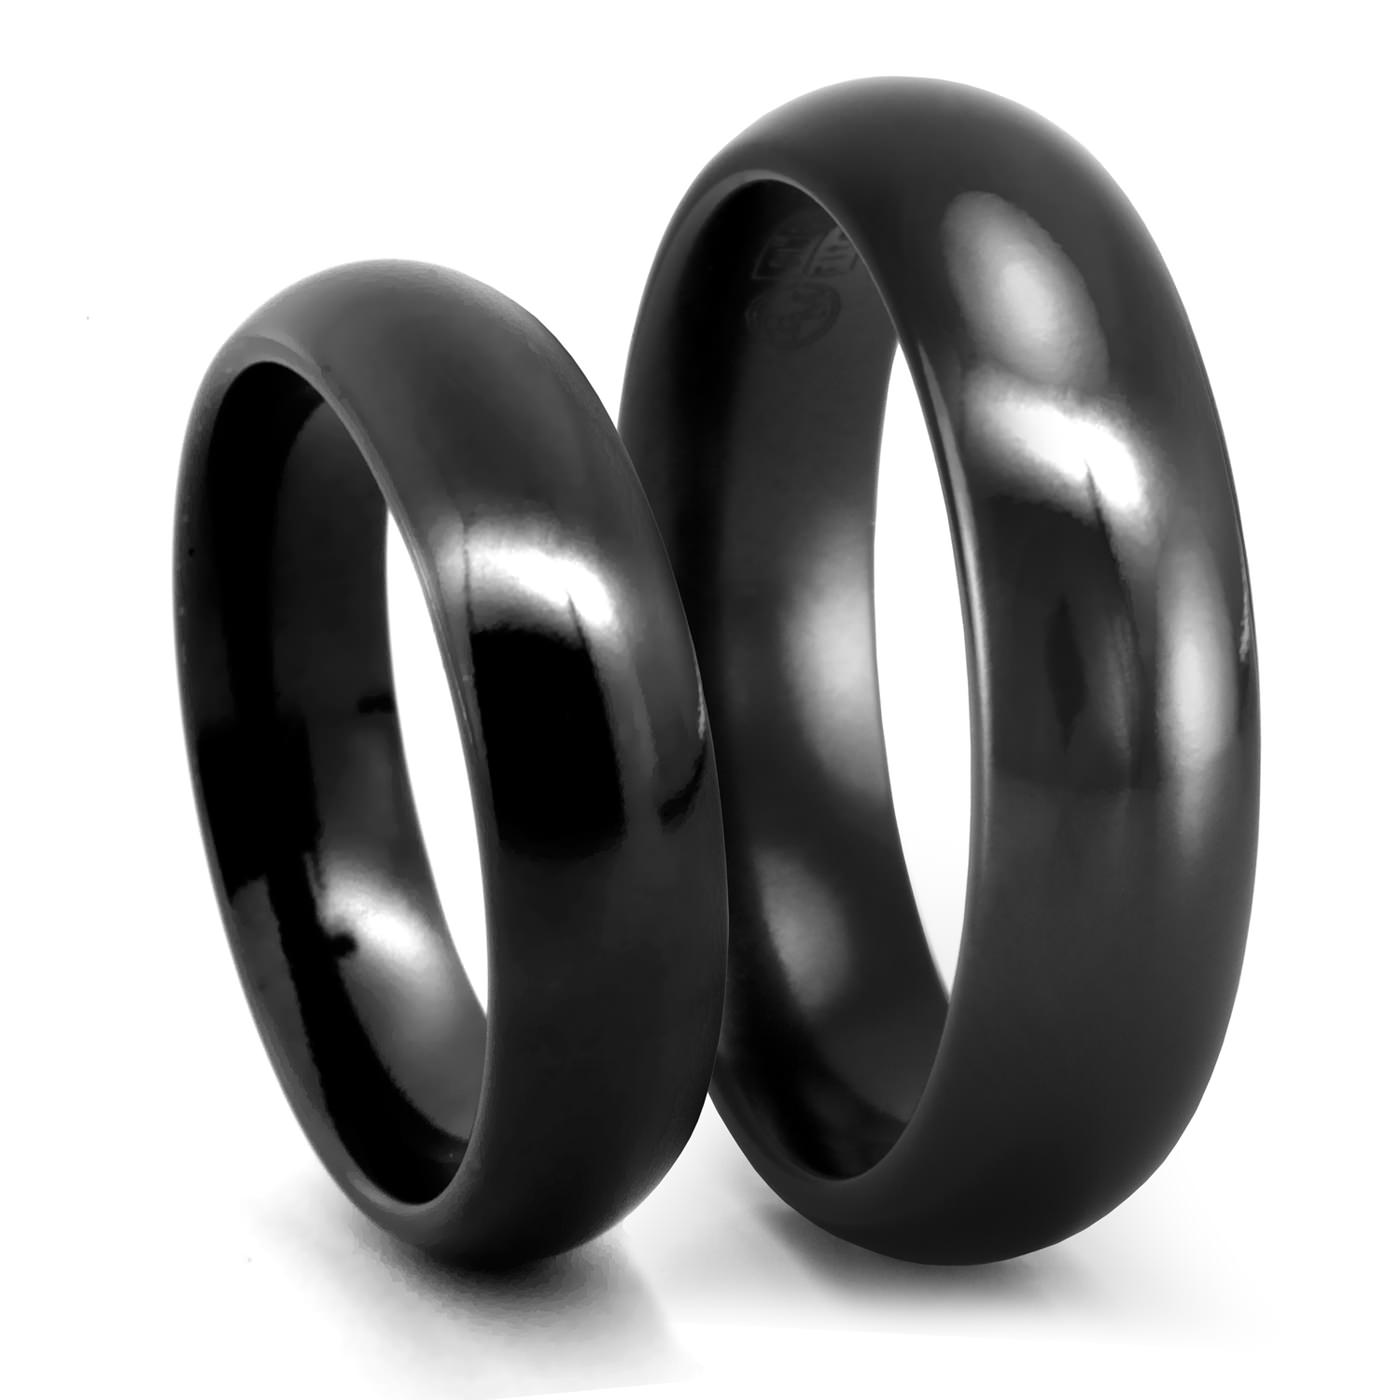 matching and jewellery besttohave wedding image set his couple mens hers rings titanium brushed ring